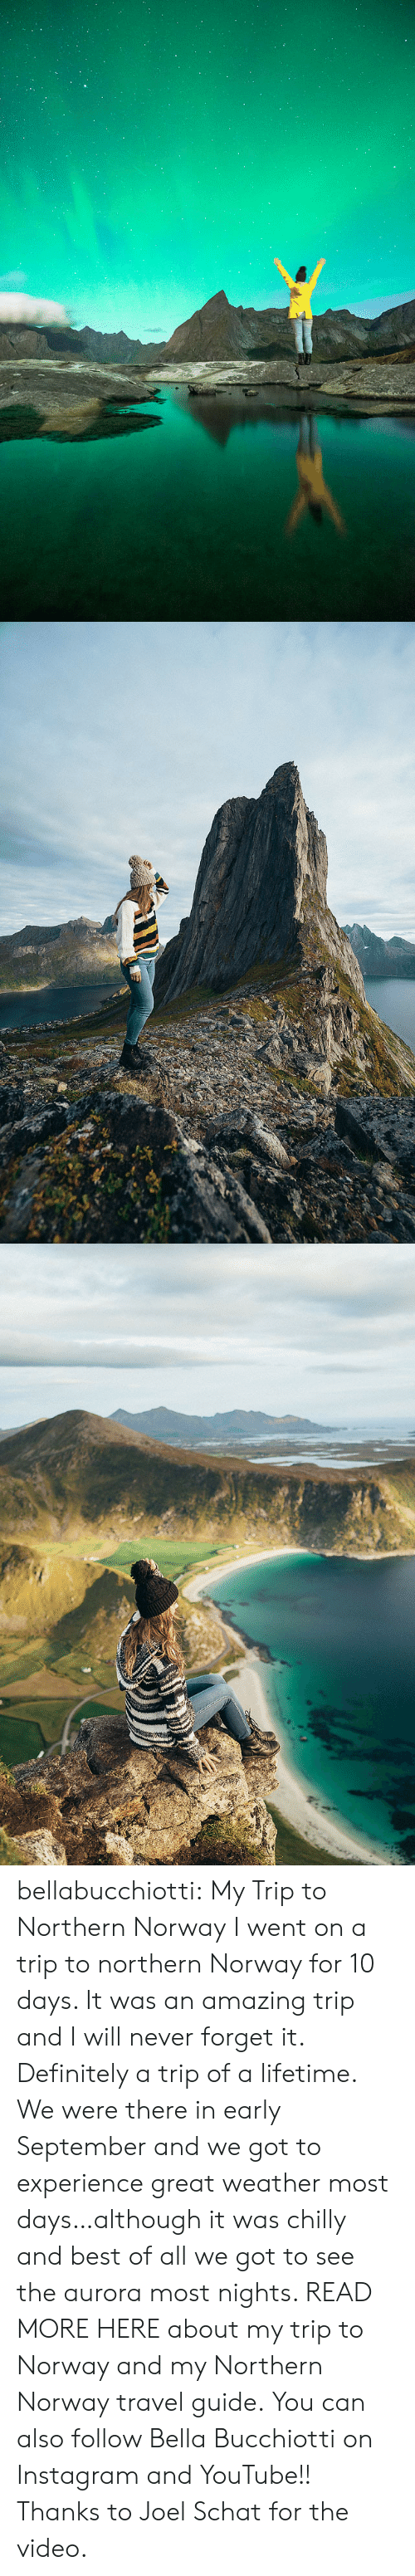 Definitely, Instagram, and Tumblr: bellabucchiotti: My Trip to Northern Norway I went on a trip to northern Norway for 10 days. It was an amazing trip and I will never forget it. Definitely a trip of a lifetime. We were there in early September and we got to experience great weather most days…although it was chilly and best of all we got to see the aurora most nights. READ MORE HERE about my trip to Norway and my Northern Norway travel guide.  You can also follow Bella Bucchiotti on Instagram and YouTube!!   Thanks to Joel Schat for the video.